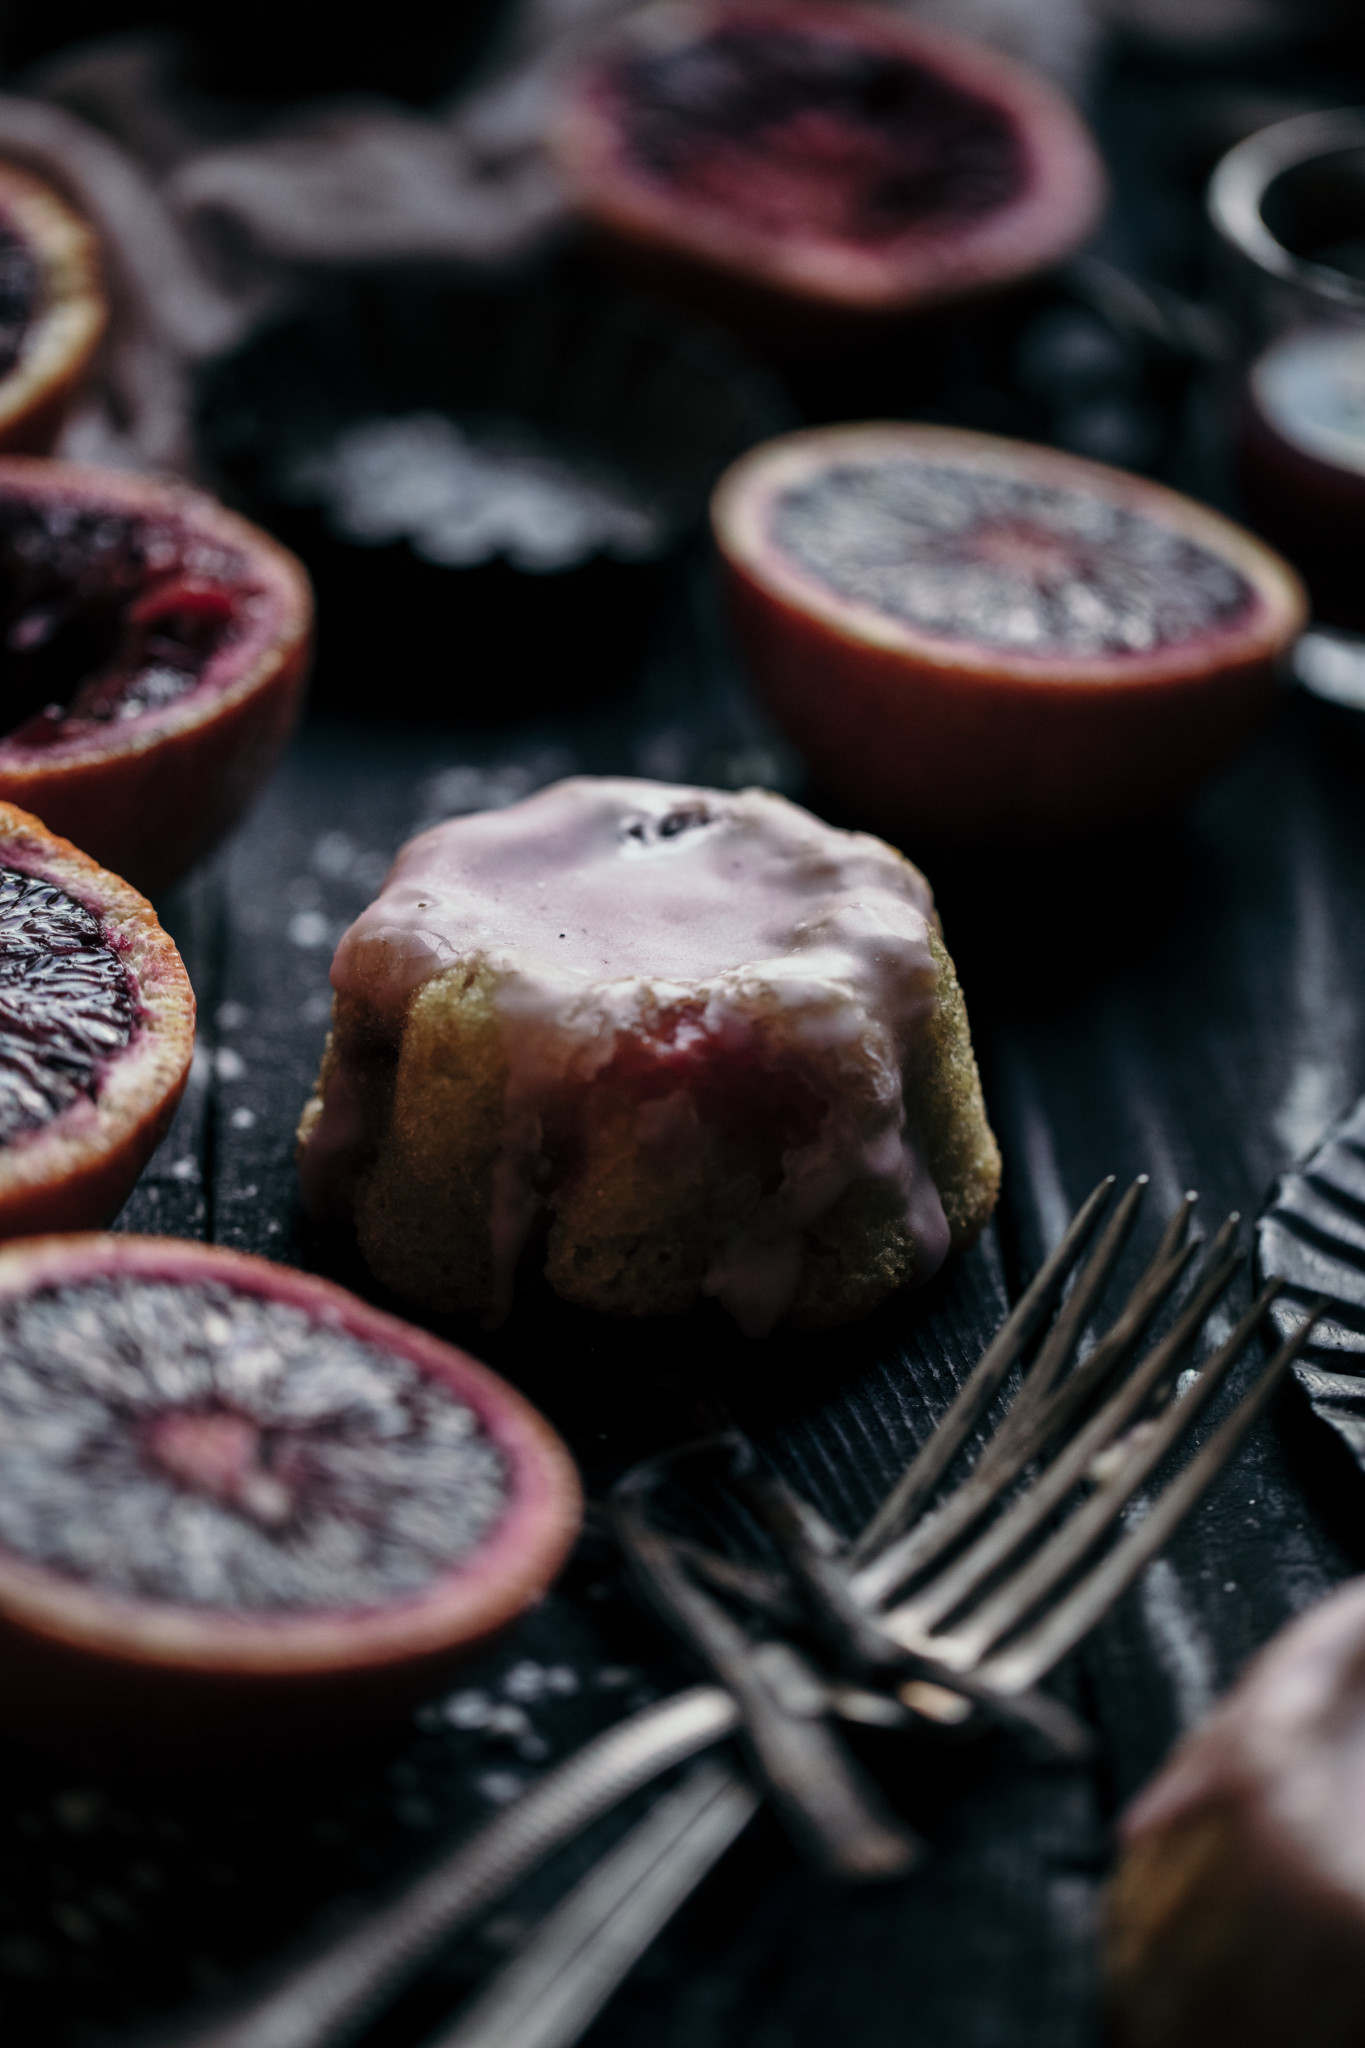 Blood orange cake in moody food photography